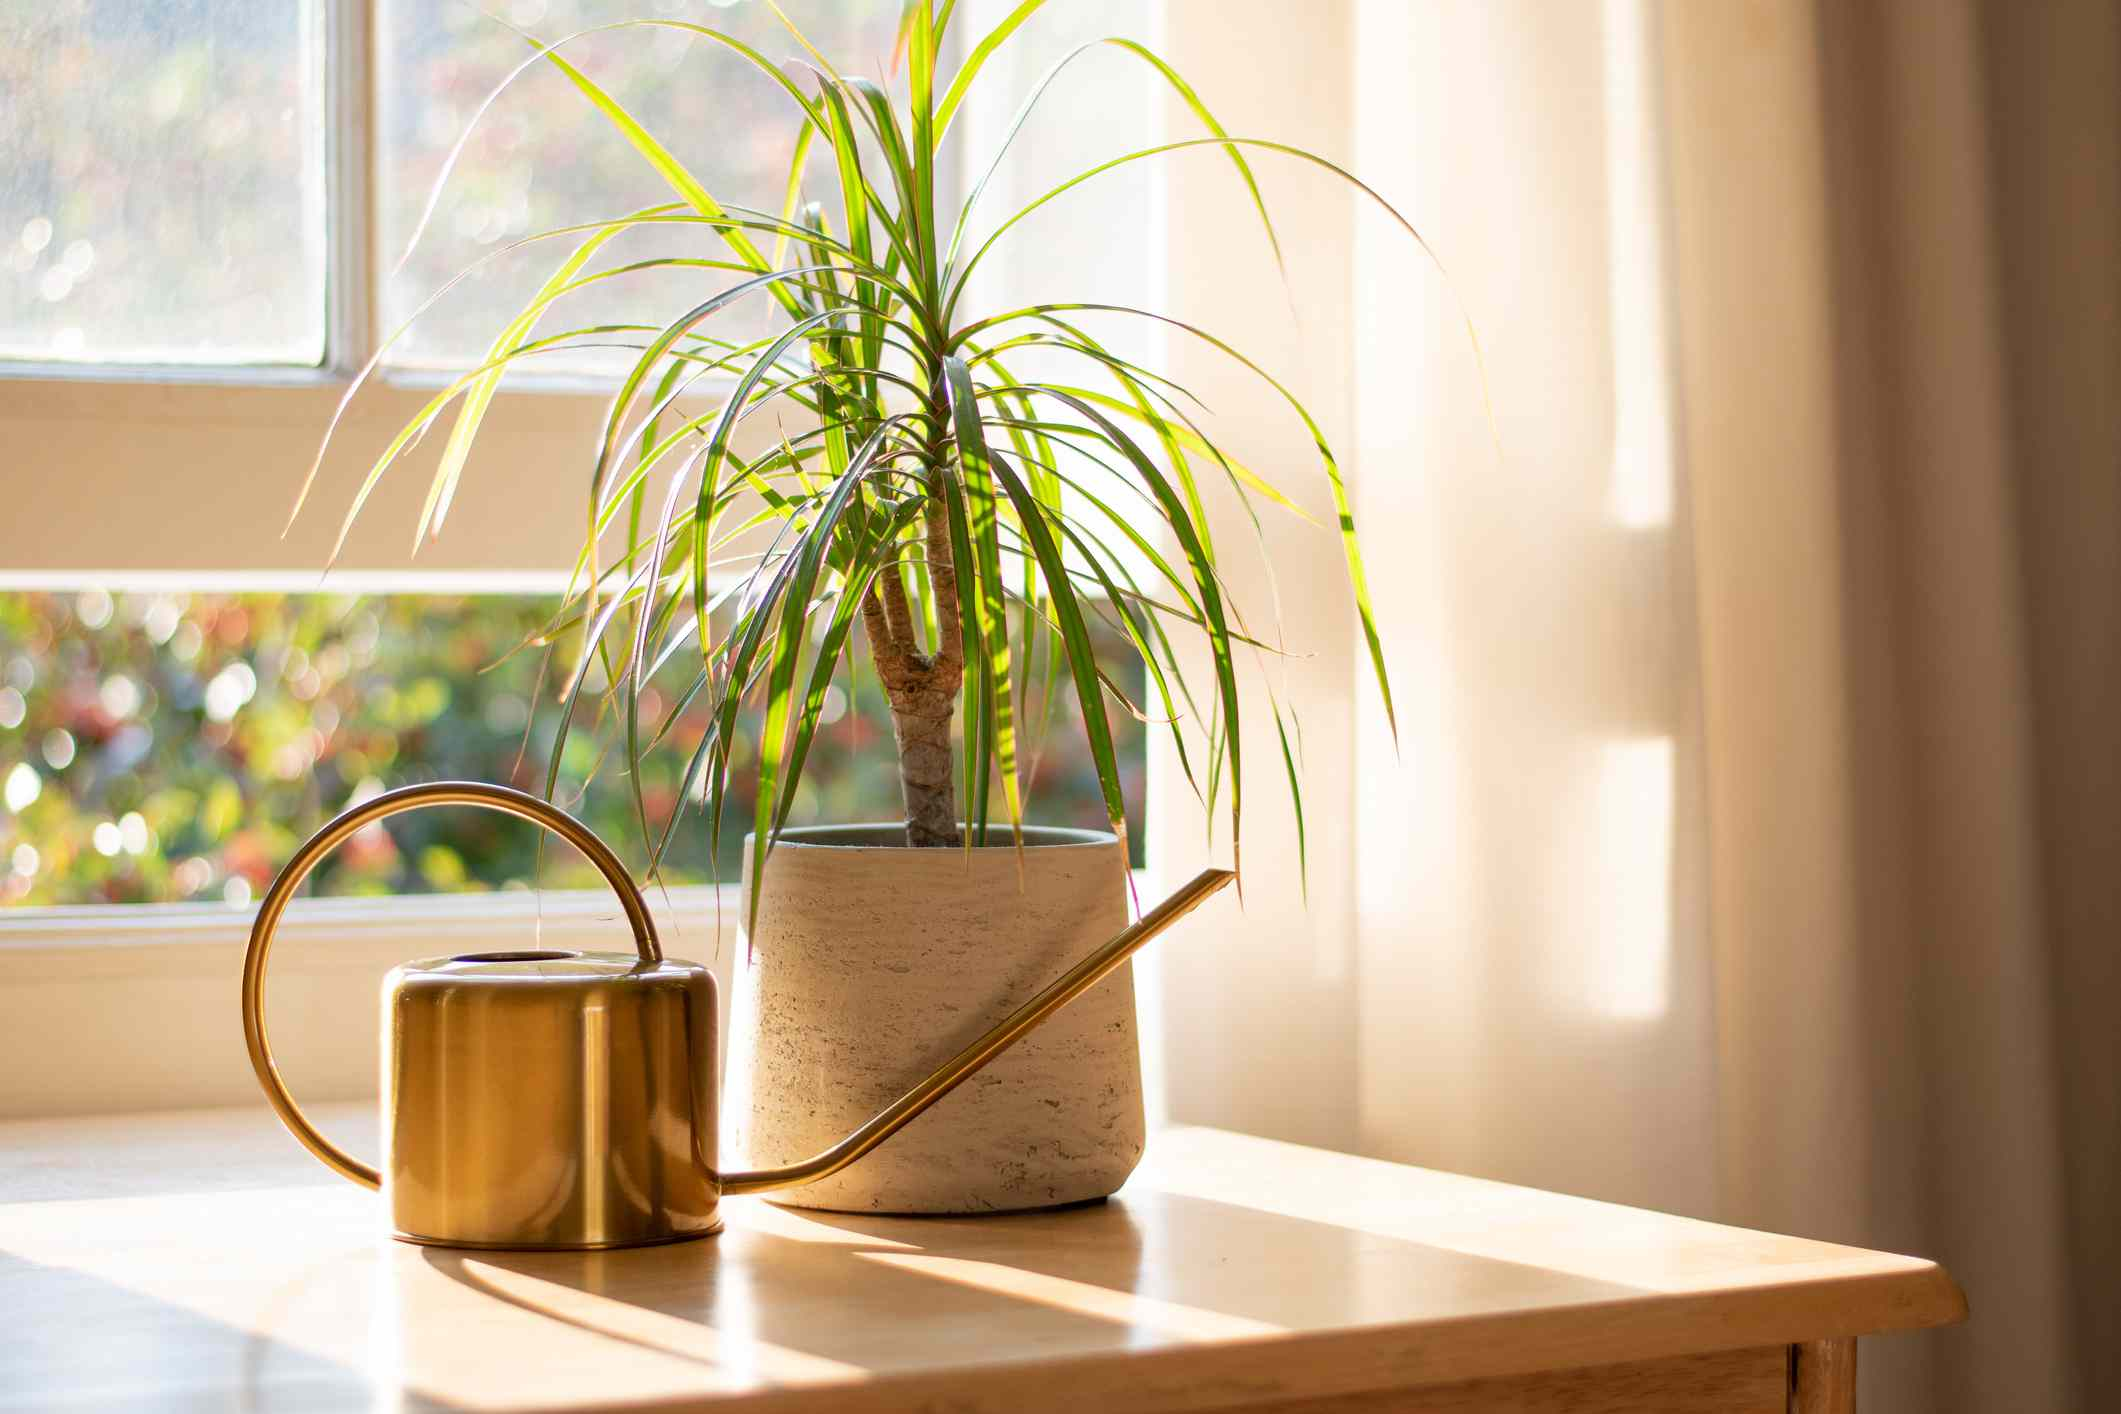 A dragon tree in a pot next to a metal watering can in a sunny room